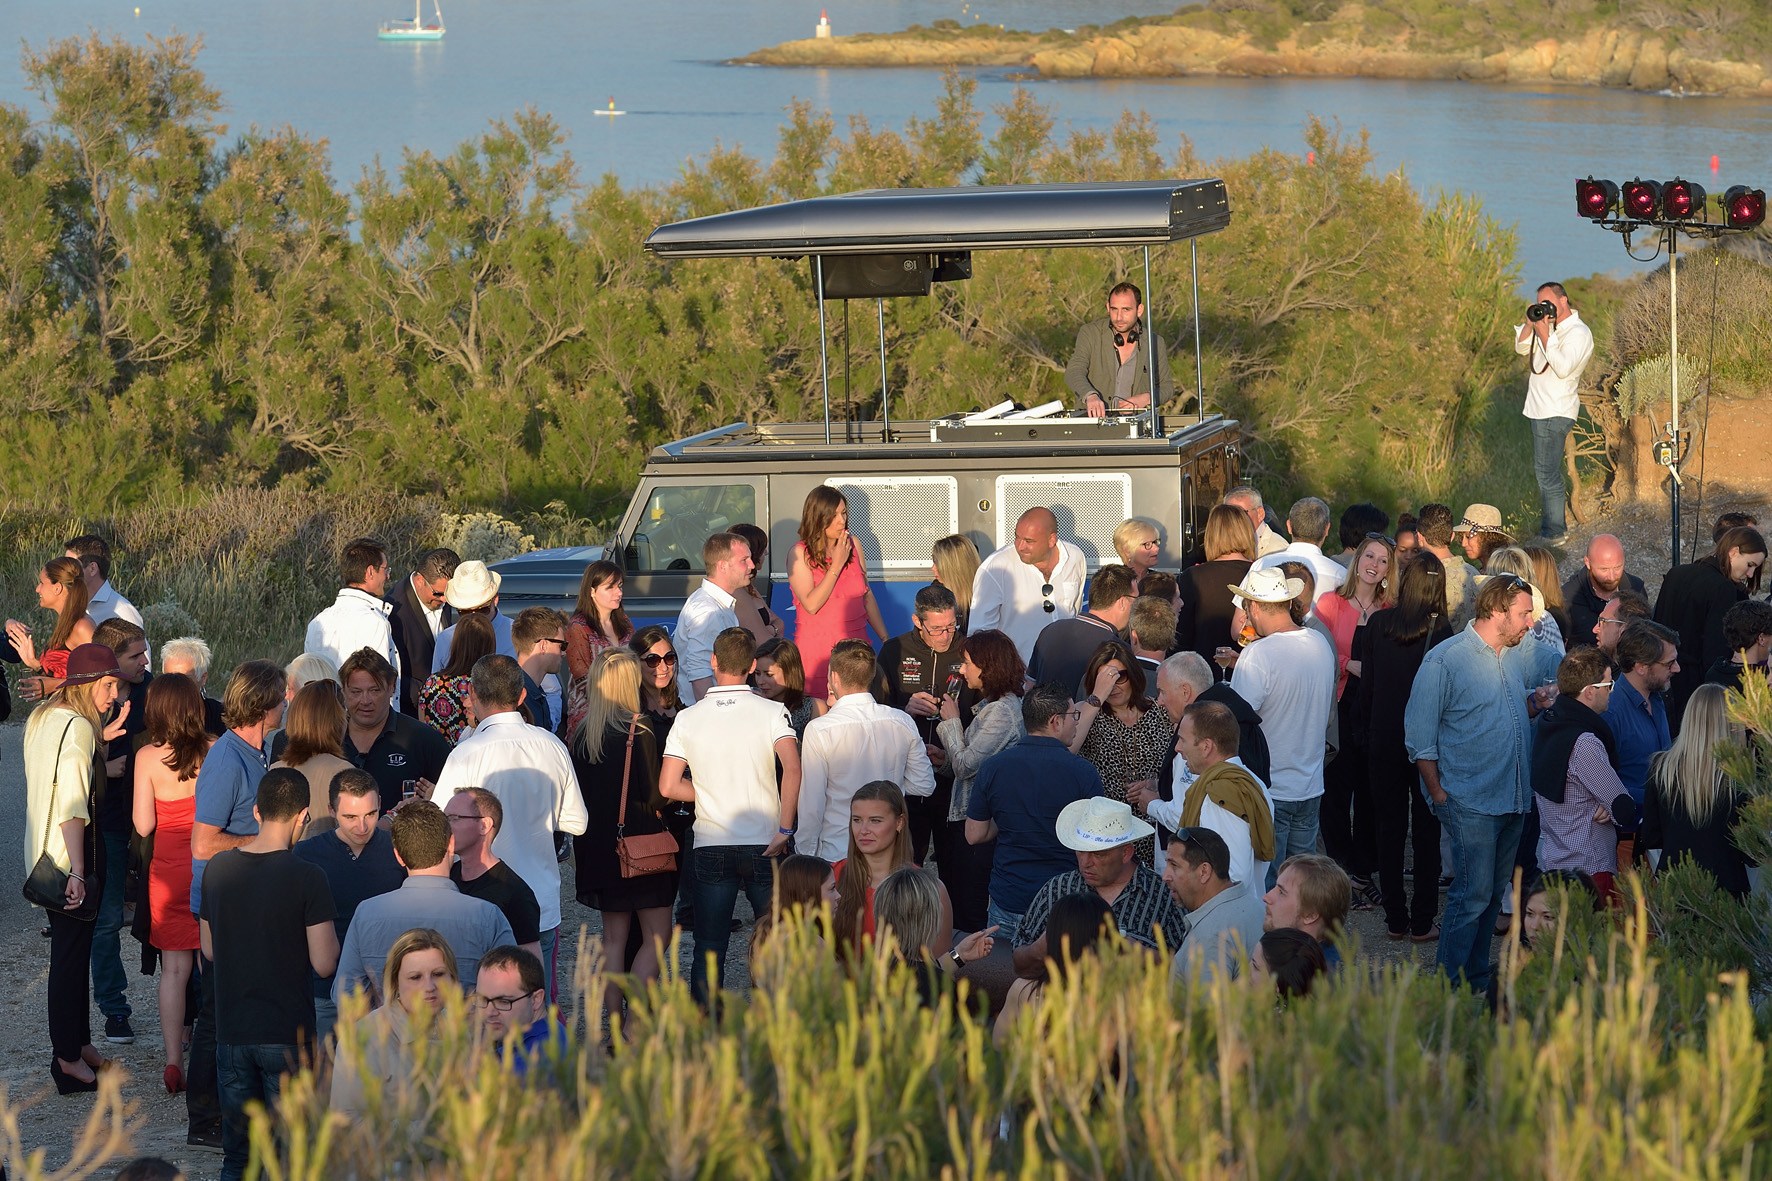 dj truck france, réalisation dj truck, new beat production, iles des embiez dj, 10 ans LIP, dj truck, pop top events, street marketing, marketing opérationnel, événement, son, lumière, véhicule évènementiel, Land Rover, sono mobile, dj mobile, event car, voiture dj, 4x4 dj, dj outdoor, événement outdoor, sonorisation mobile, voiture musicale, 4x4 musical, déambulation musicale, dj extérieur, dj plein air, communication originale